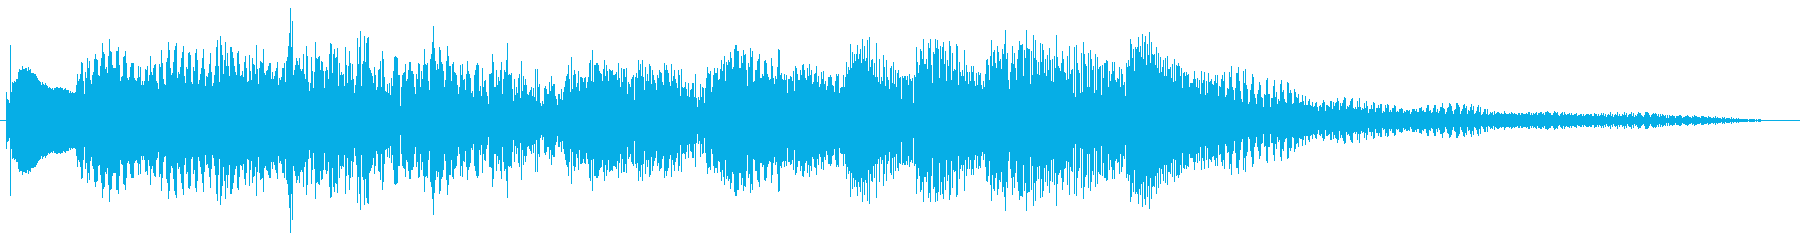 Image of sound logo and food and beverage related companies's reproduced waveform